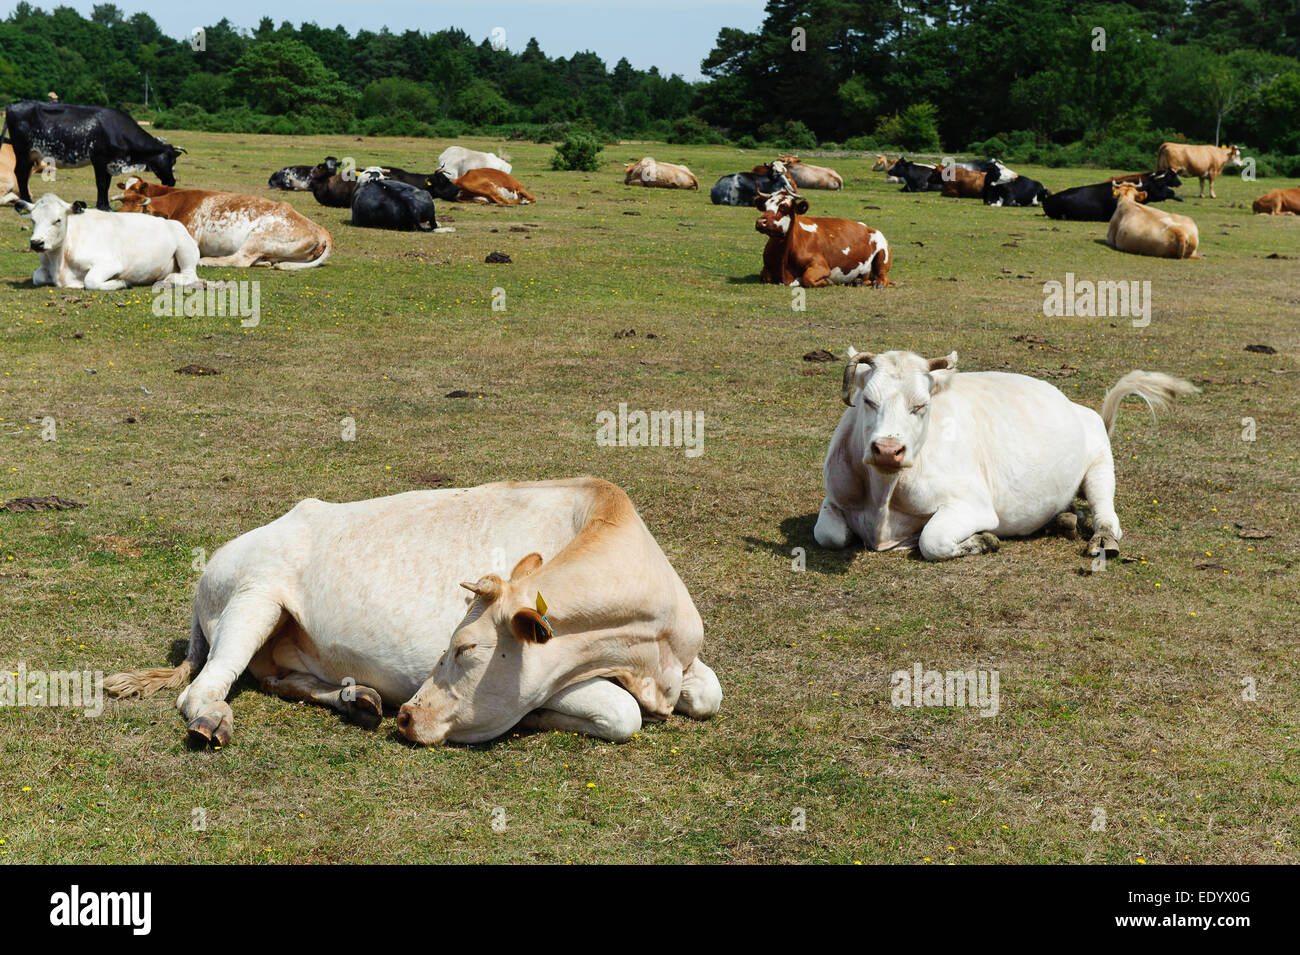 Extremely hot day in the New Forest - Stock Image